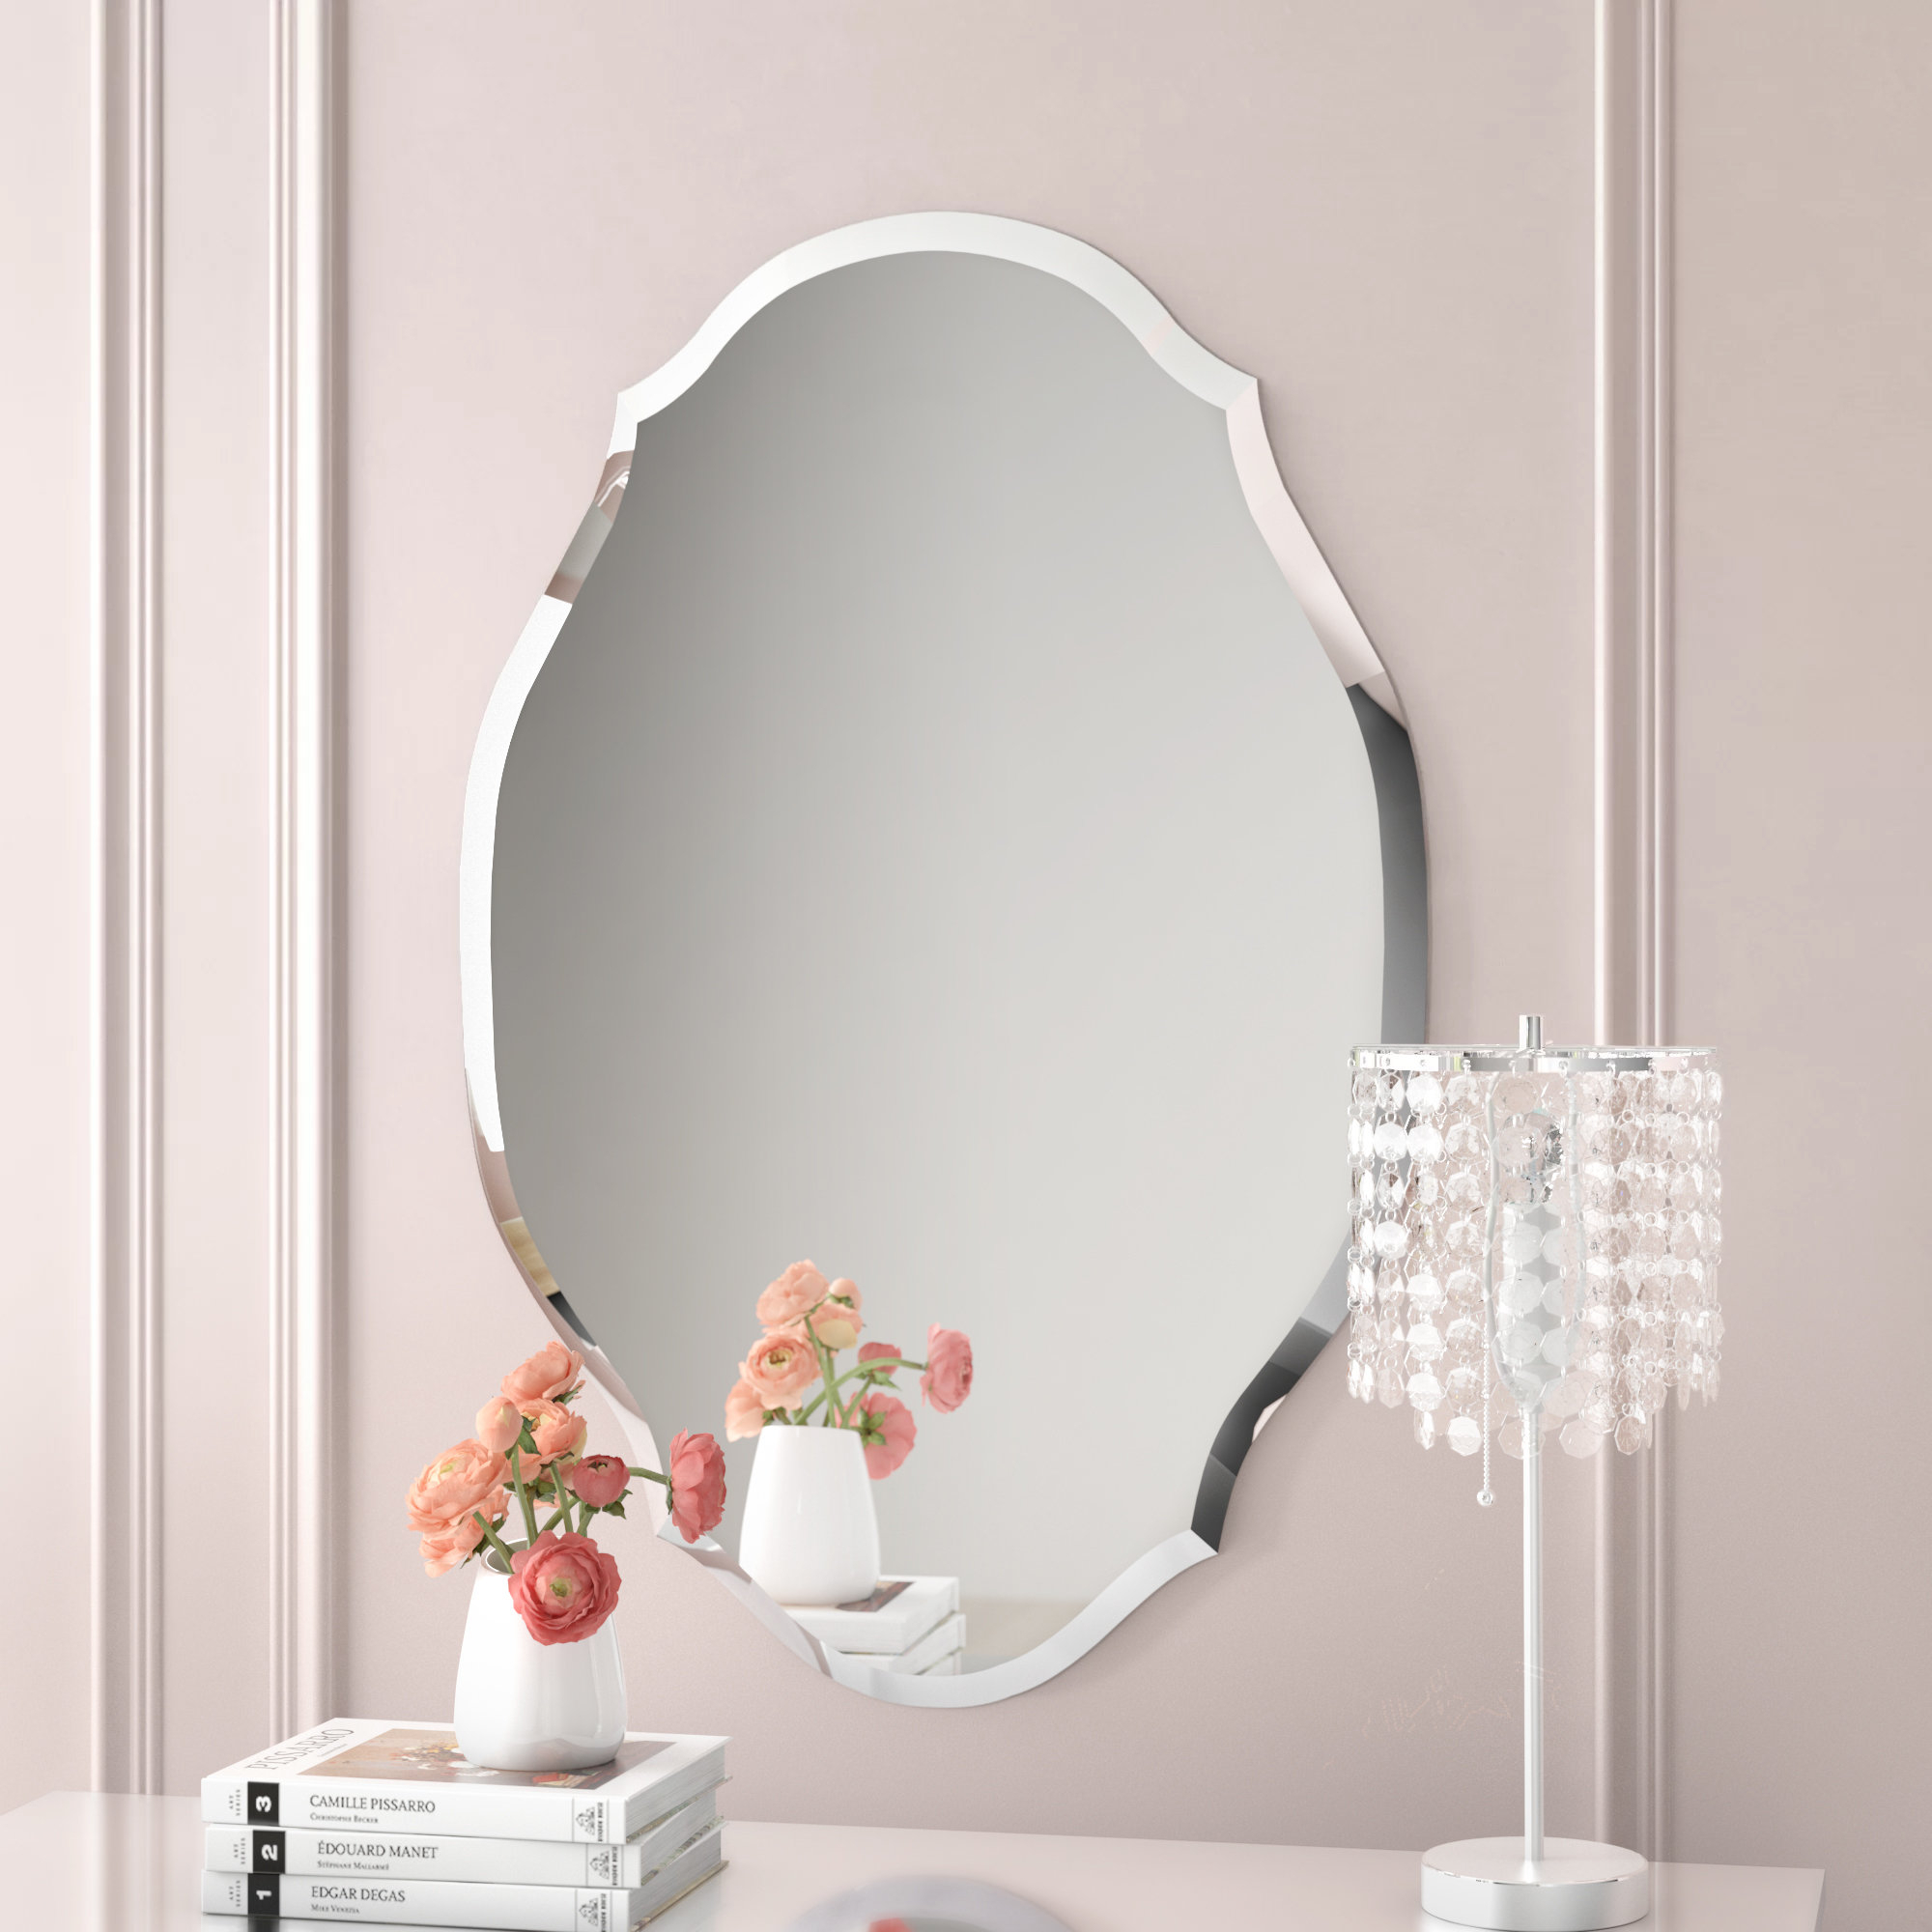 Willa Arlo Interiors Egor Accent Mirror & Reviews | Wayfair With Regard To Morlan Accent Mirrors (View 5 of 20)